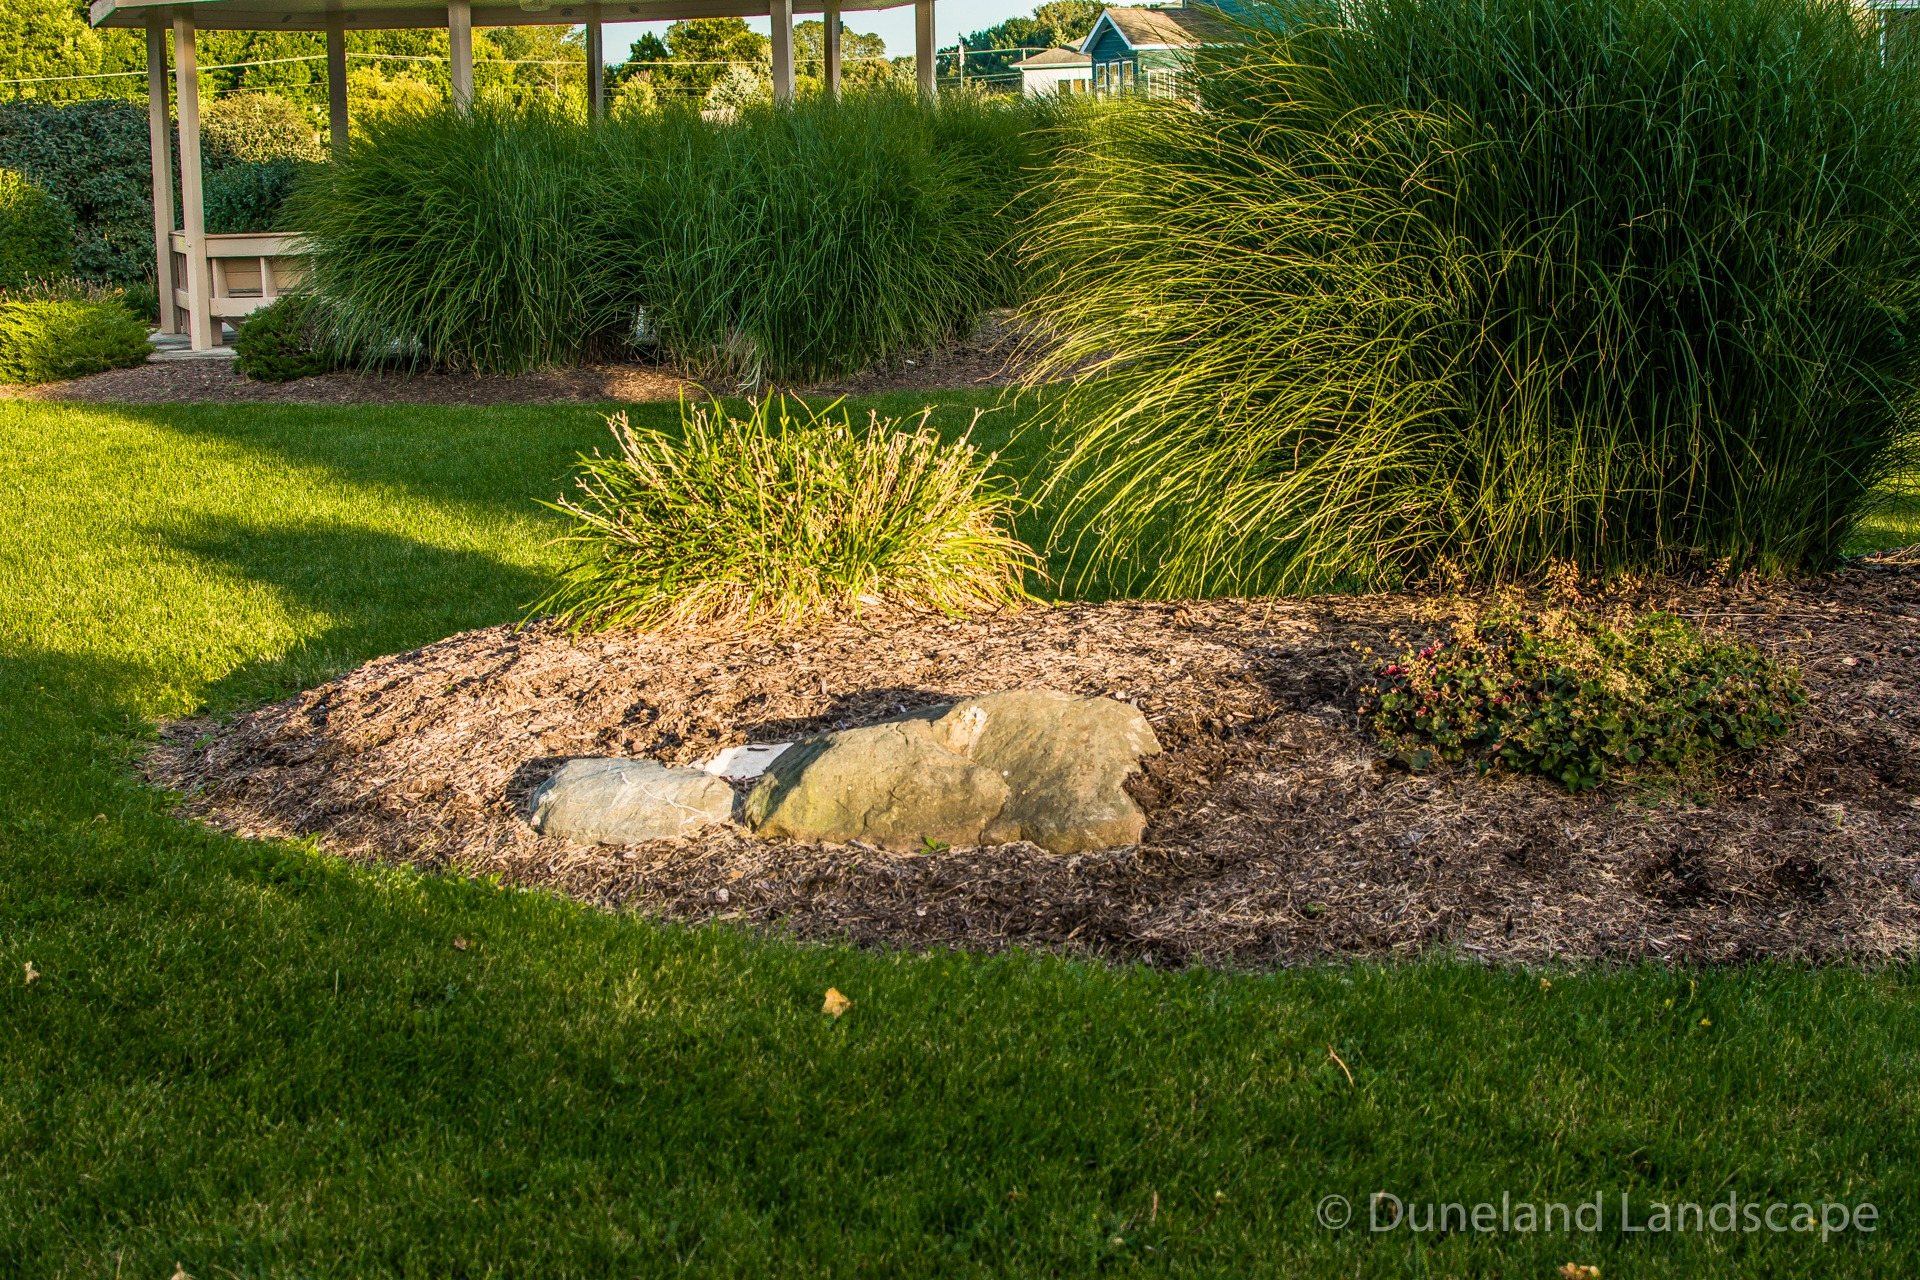 Duneland Landscaping in Valparaiso